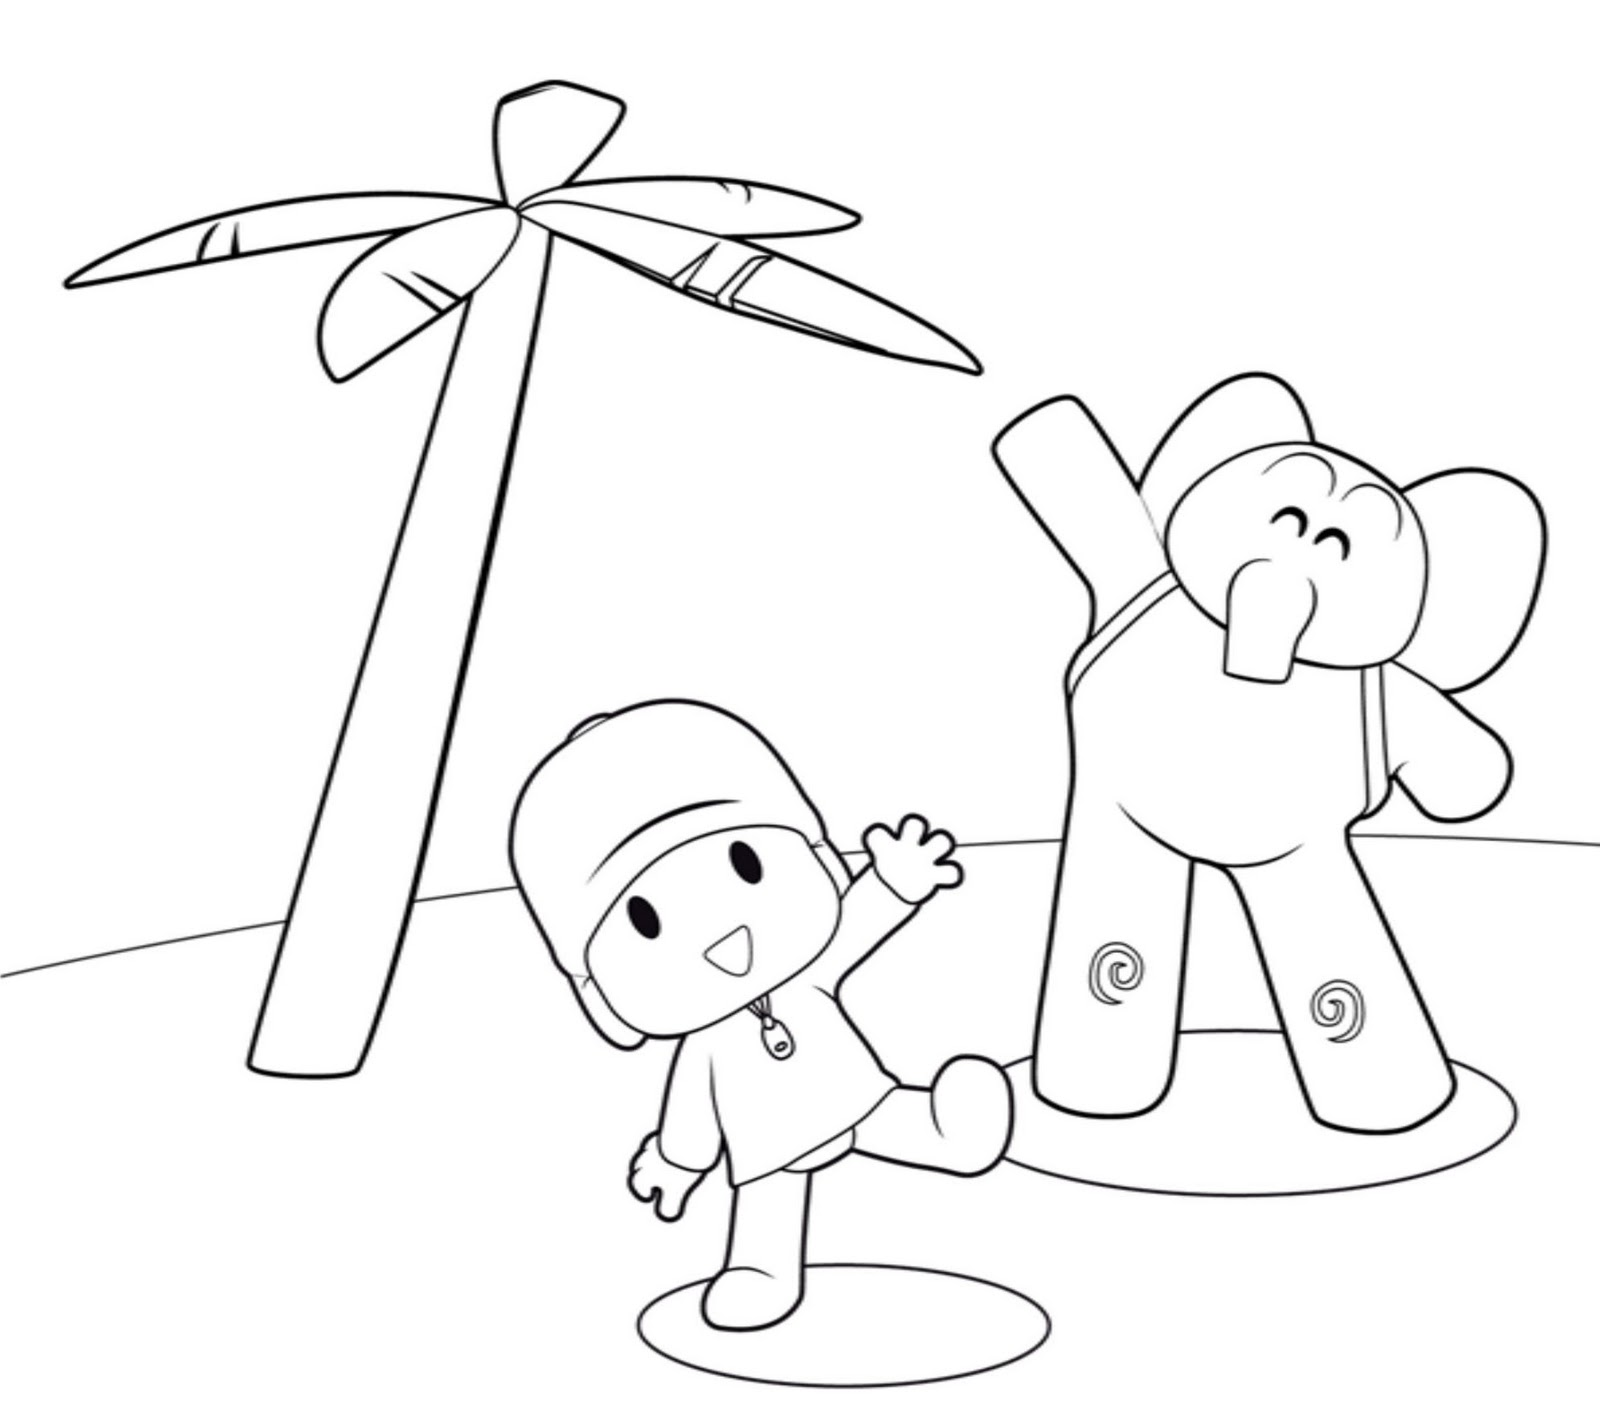 coloring pocoyo pocoyo coloring pages to download and print for free coloring pocoyo